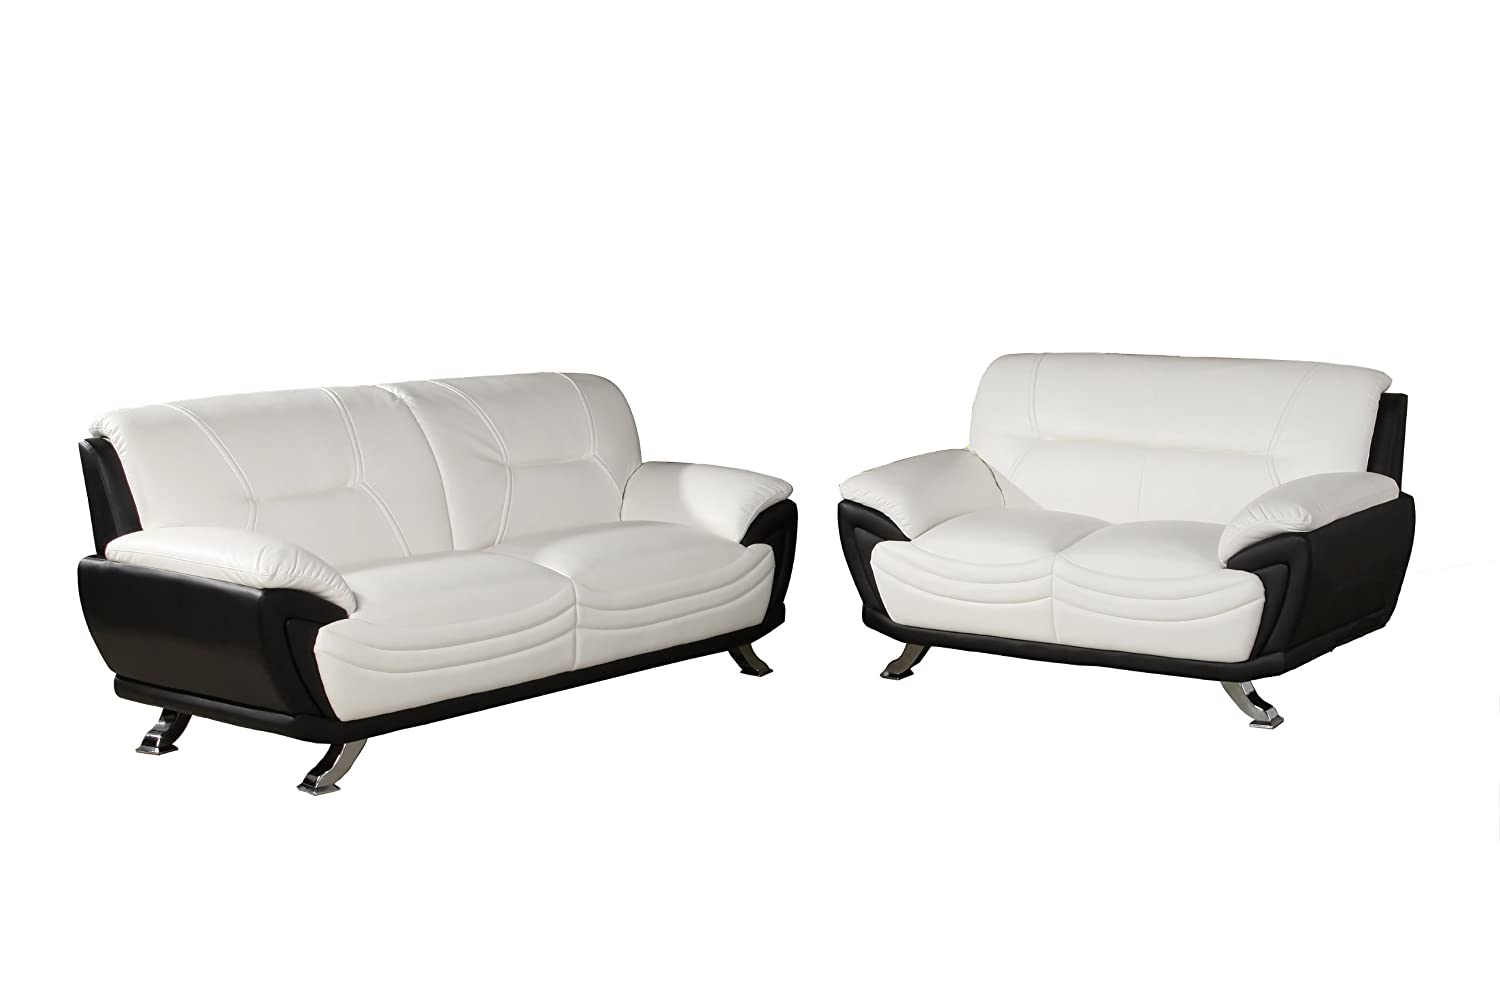 Beverly Furniture Hamm Contemporary Faux Leather 2-Piece Sofa and Loveseat Set - White/Black